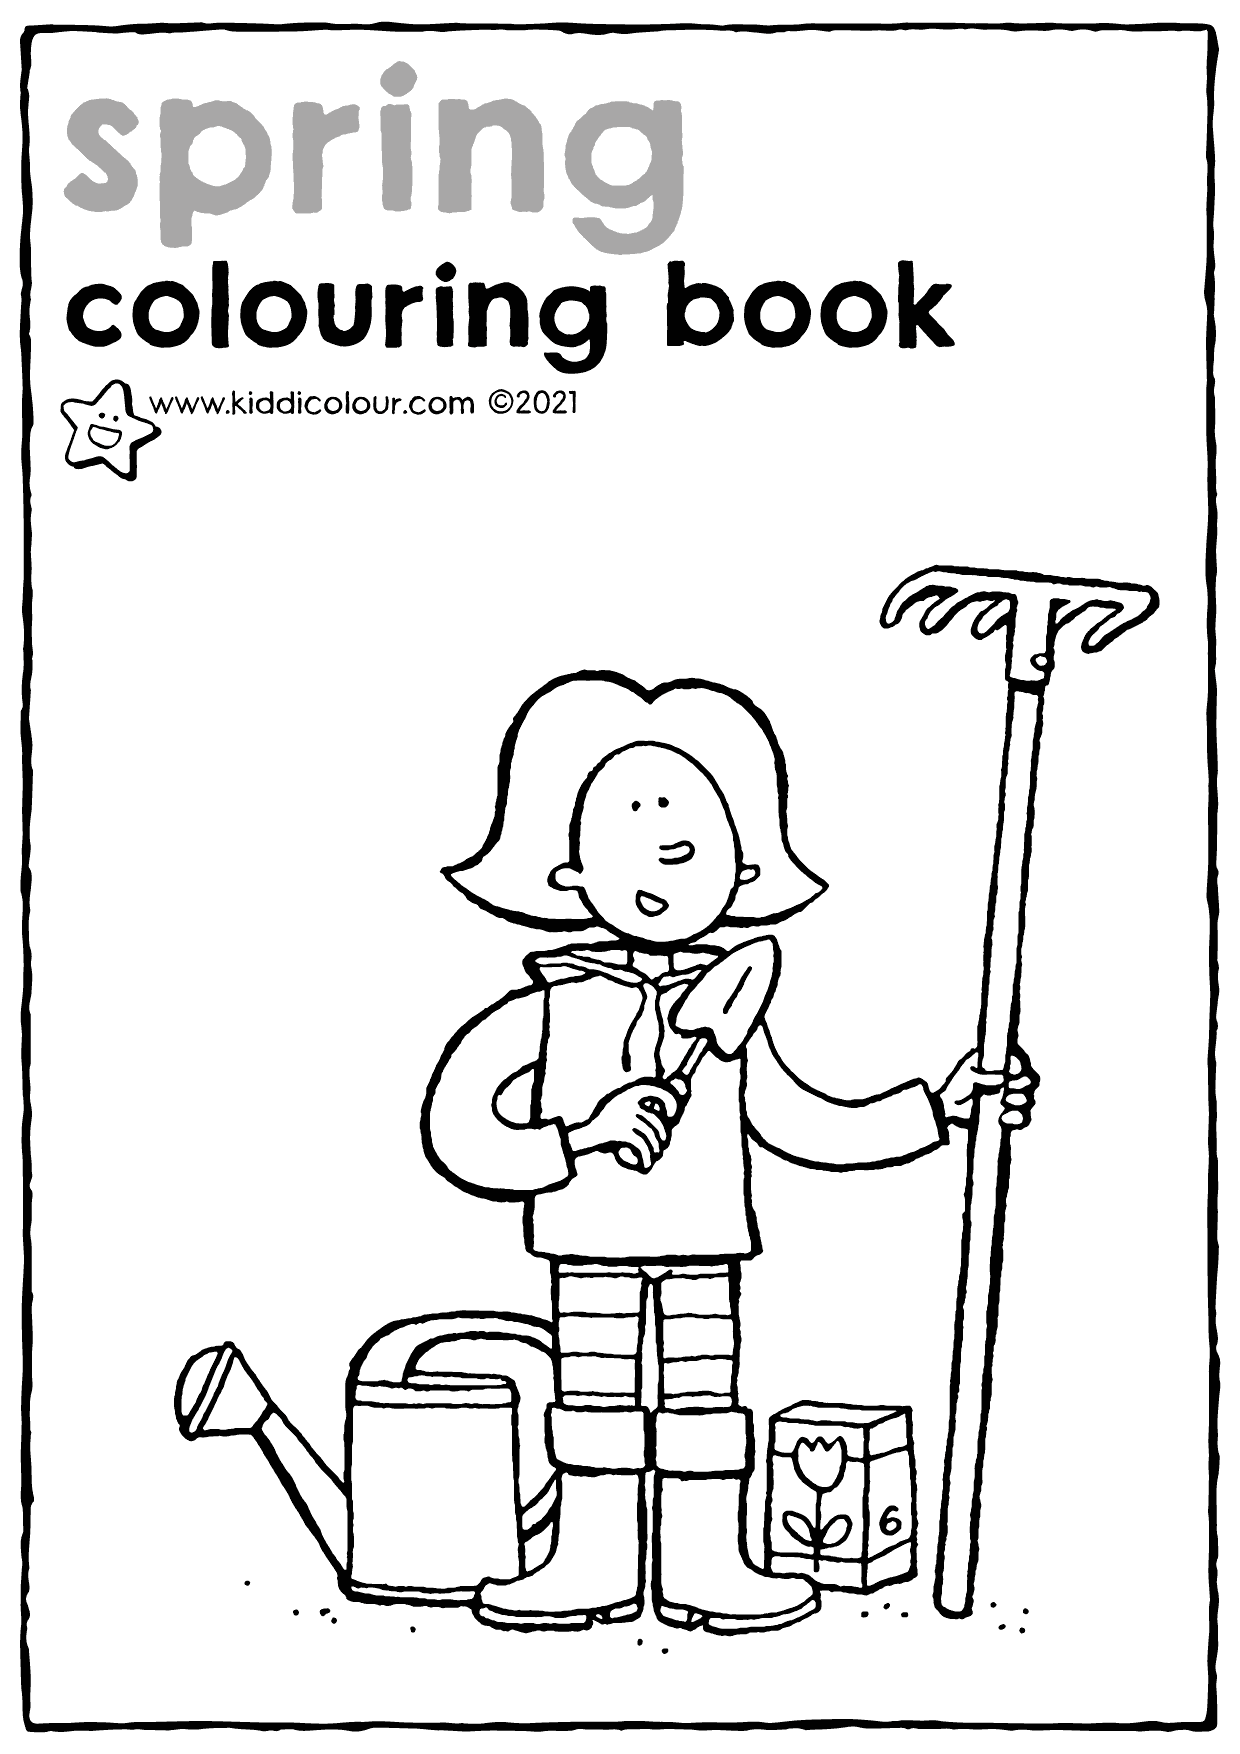 spring colouring booklet